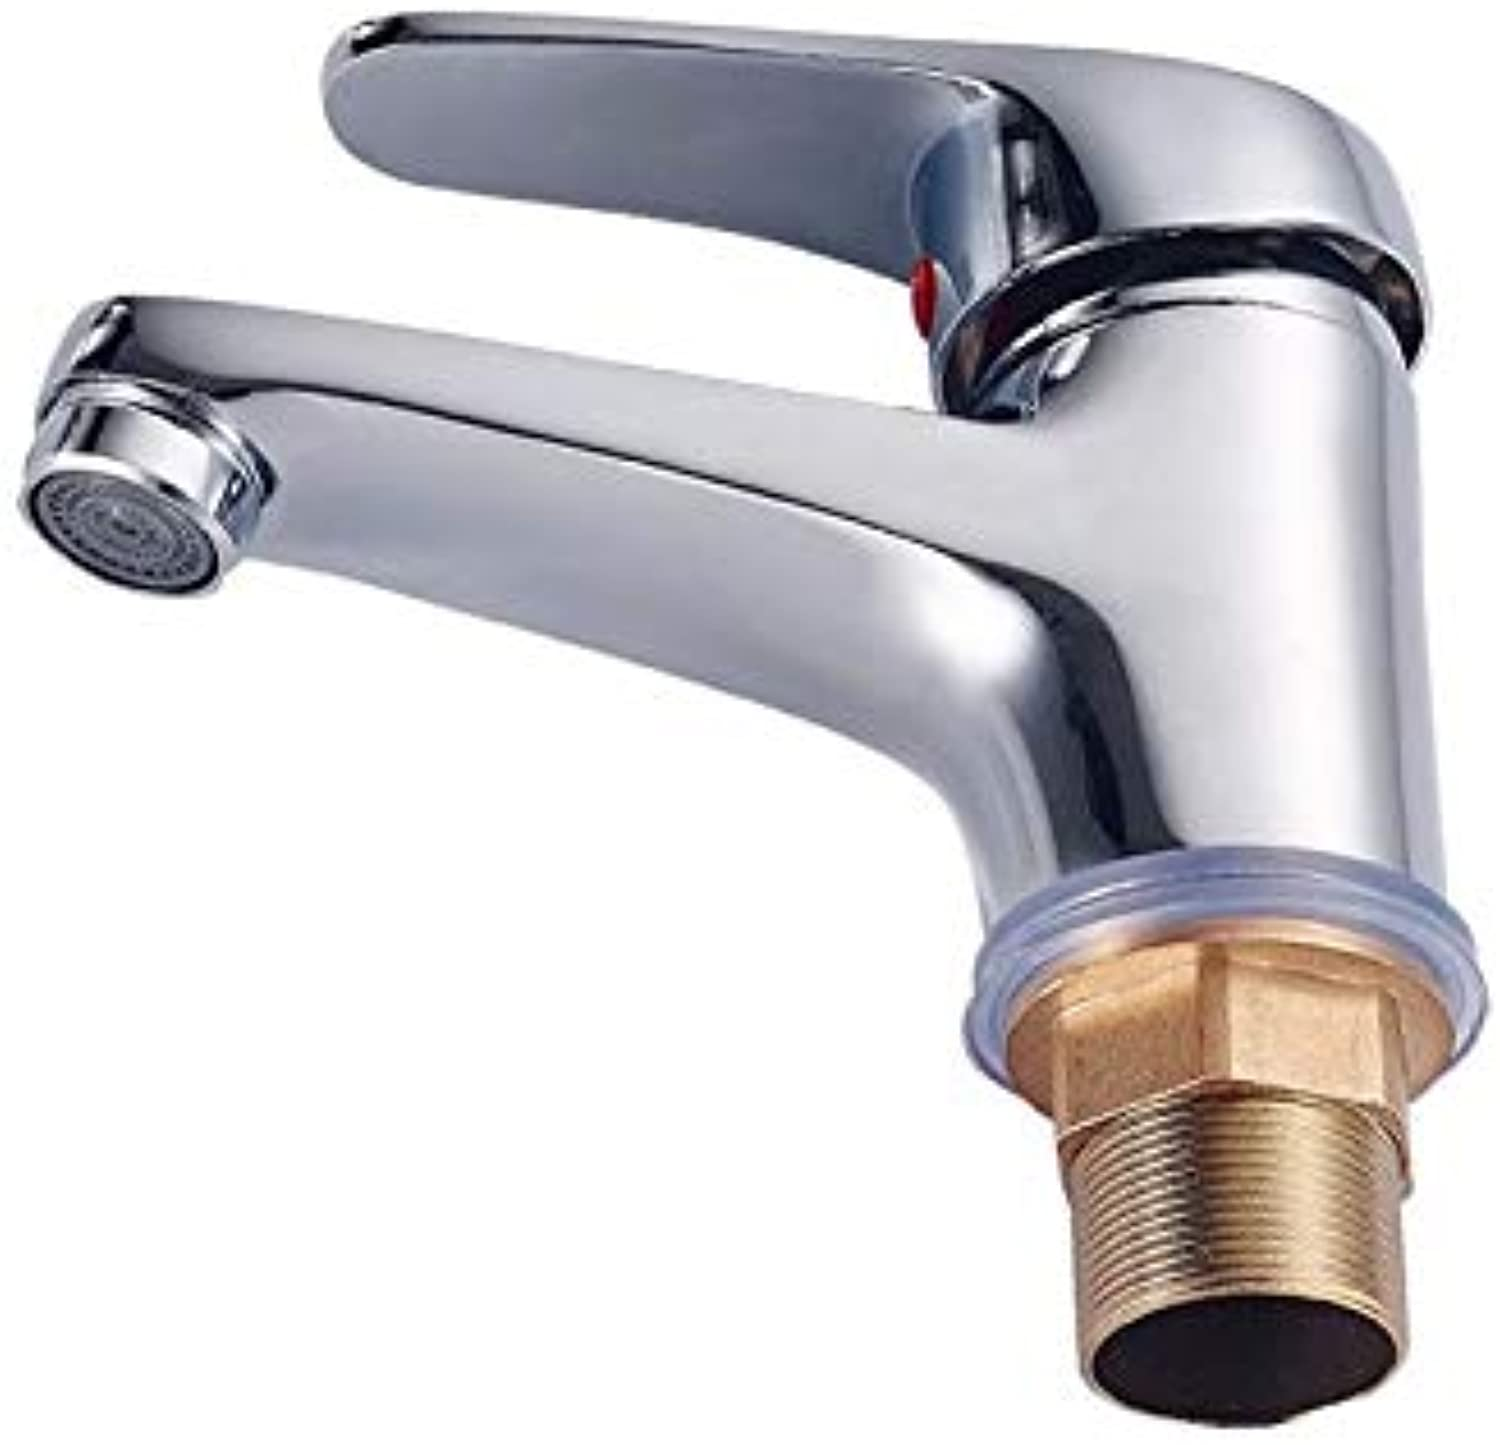 JWLT Faucet Washbasin Faucet, All Copper hot and Cold Bathroom Cabinet, Bathroom Single Hole washbasin, washbasin, Table Basin, Single Cold Water Faucet,Hot and Cold 2012 [Copper] faucets